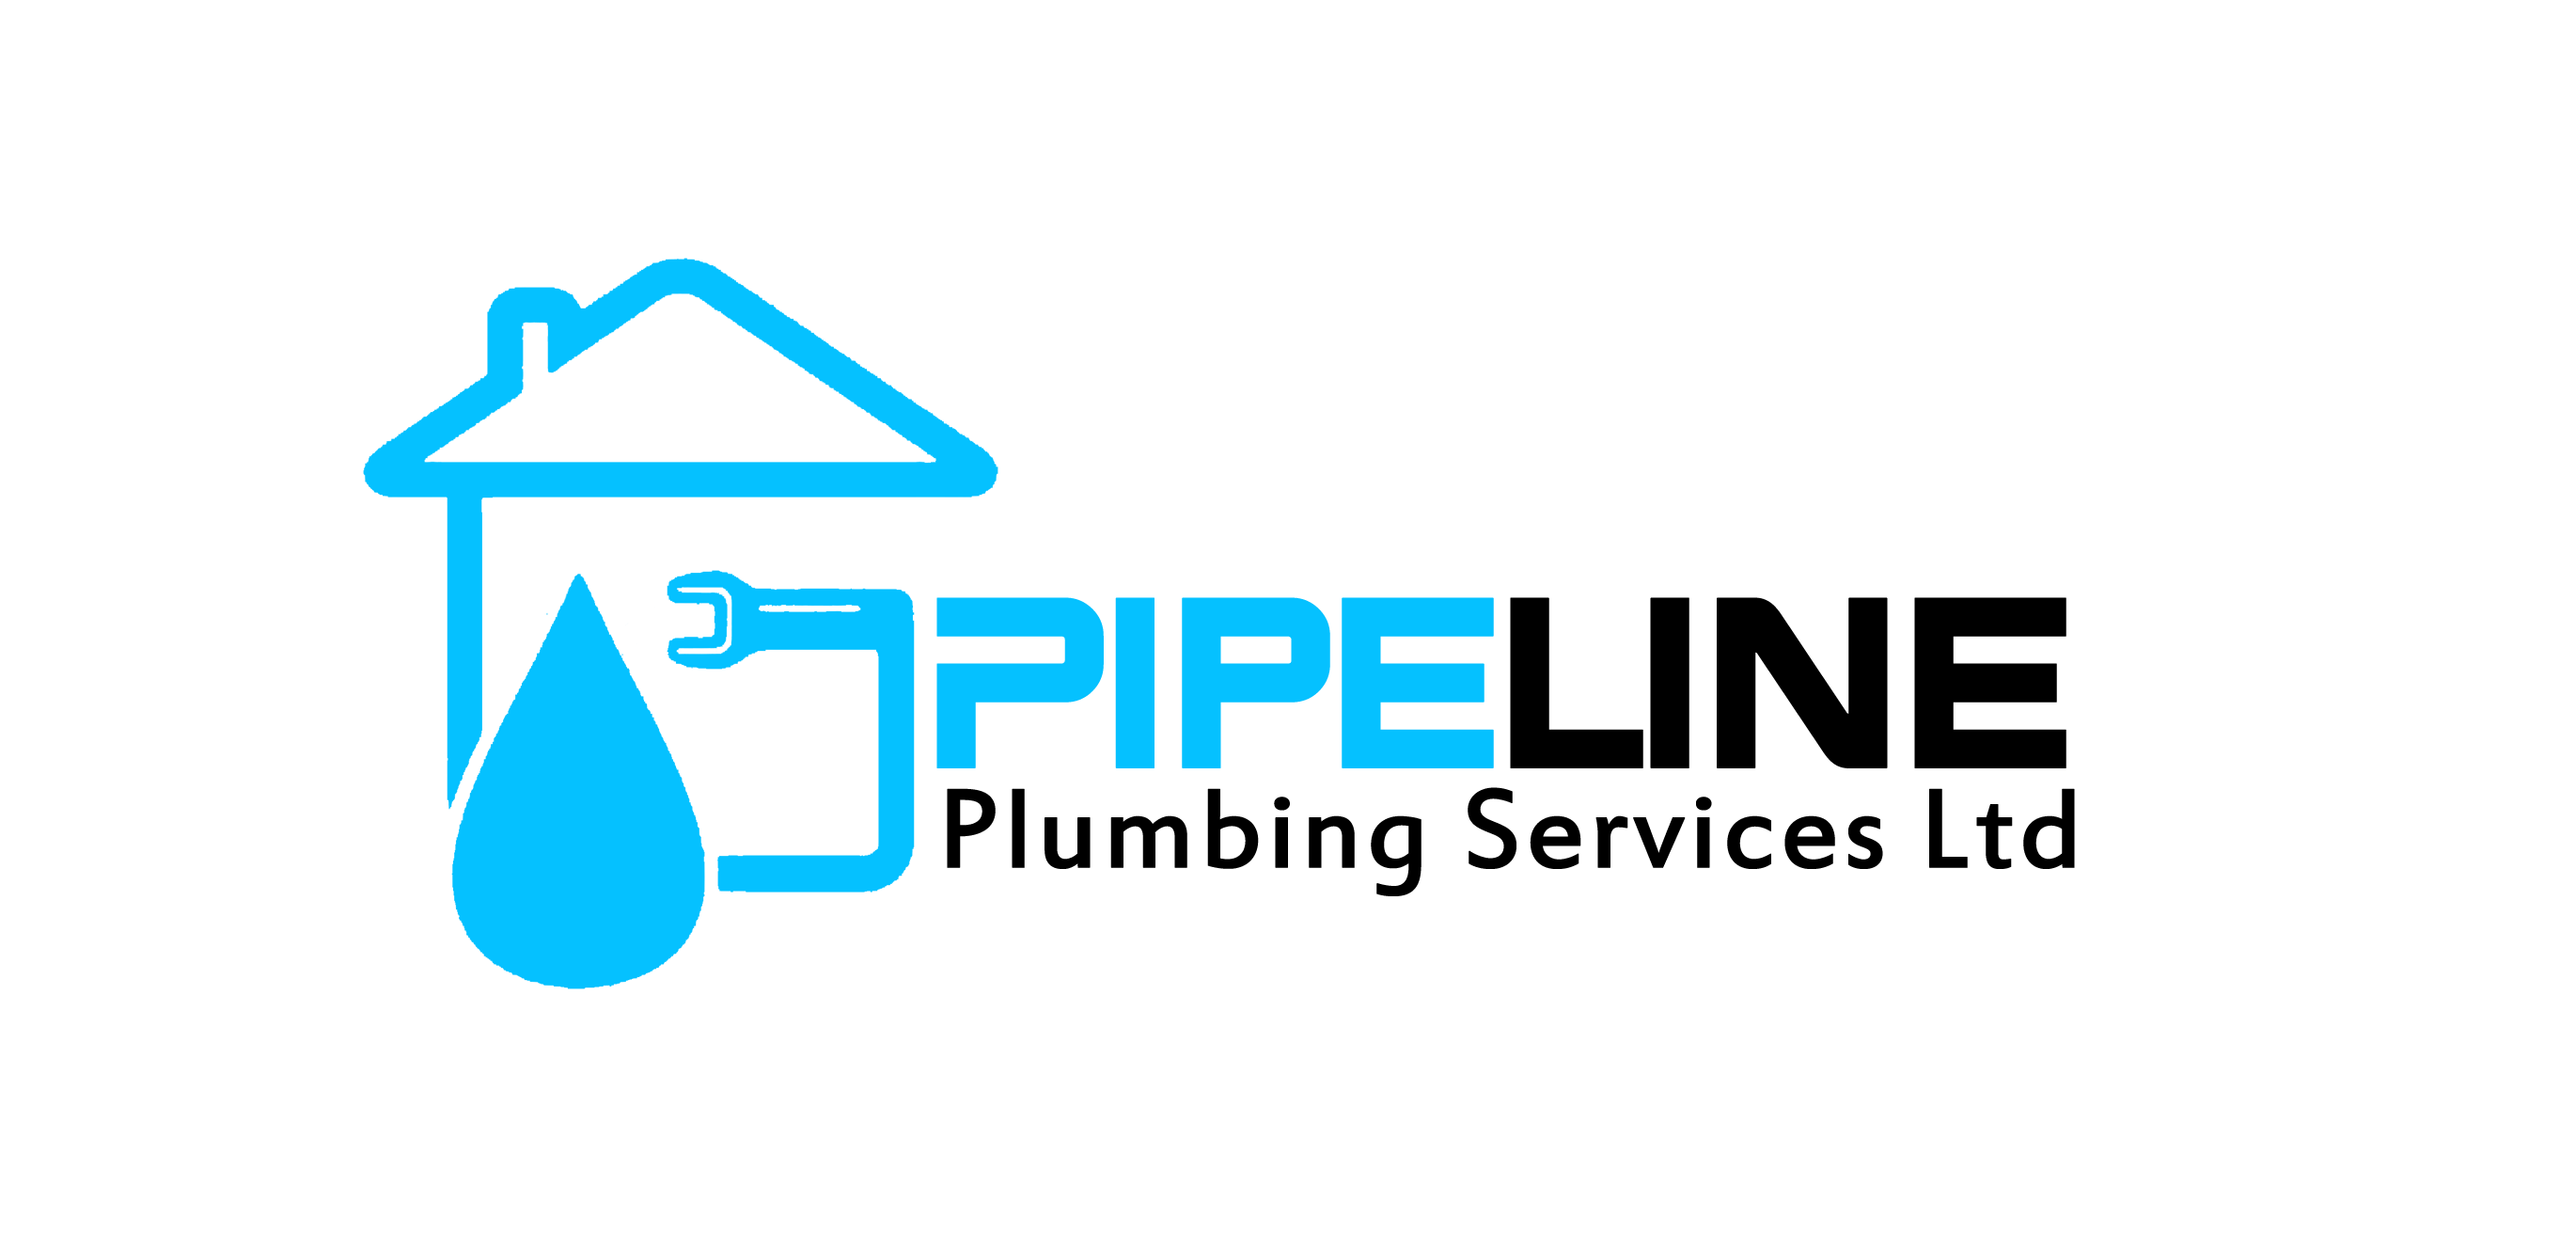 Pipeline Plumbing Services Ltd. Verified Logo